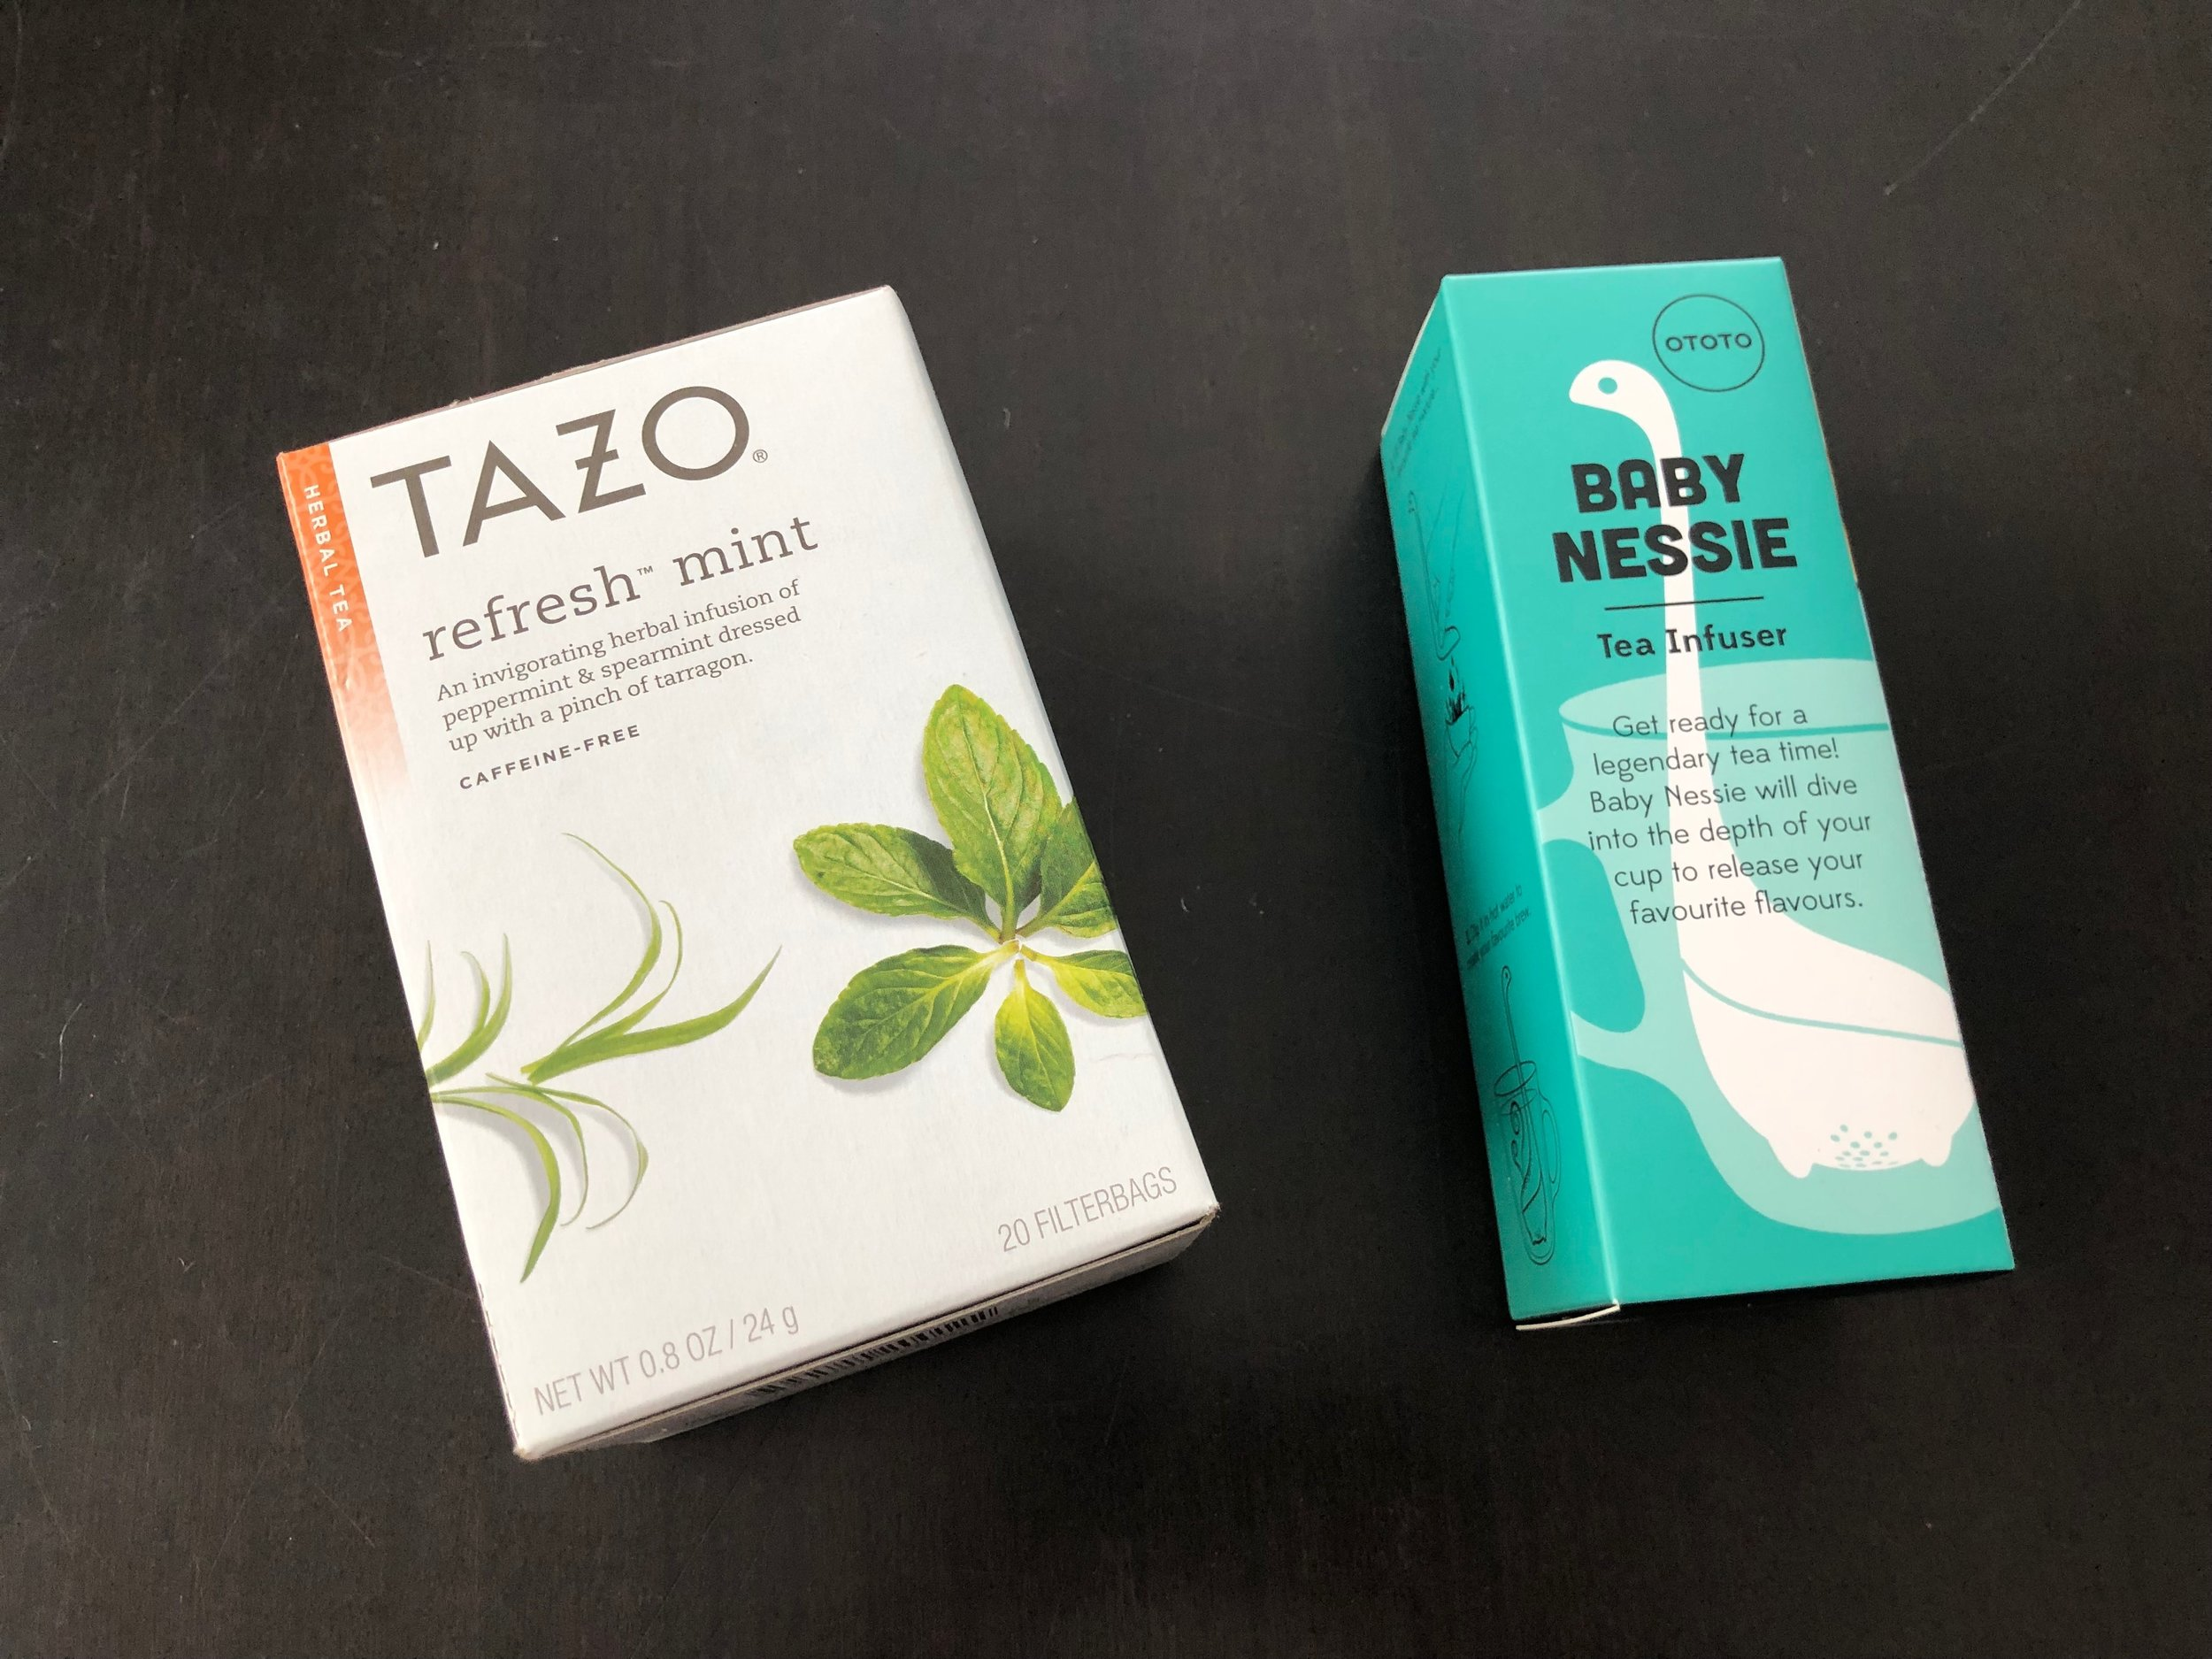 THOUGHTFUL PINCH   IDEAS: A) Put some Tazo tea packets inside the mug with a tiny bottle of honey. Or B) For those who enjoy loose leaf tea - combine a fun tea infuser with a bag of some loose tea leaves. Either way, that darling Live & Love MN mug combines well with any kind of tea.